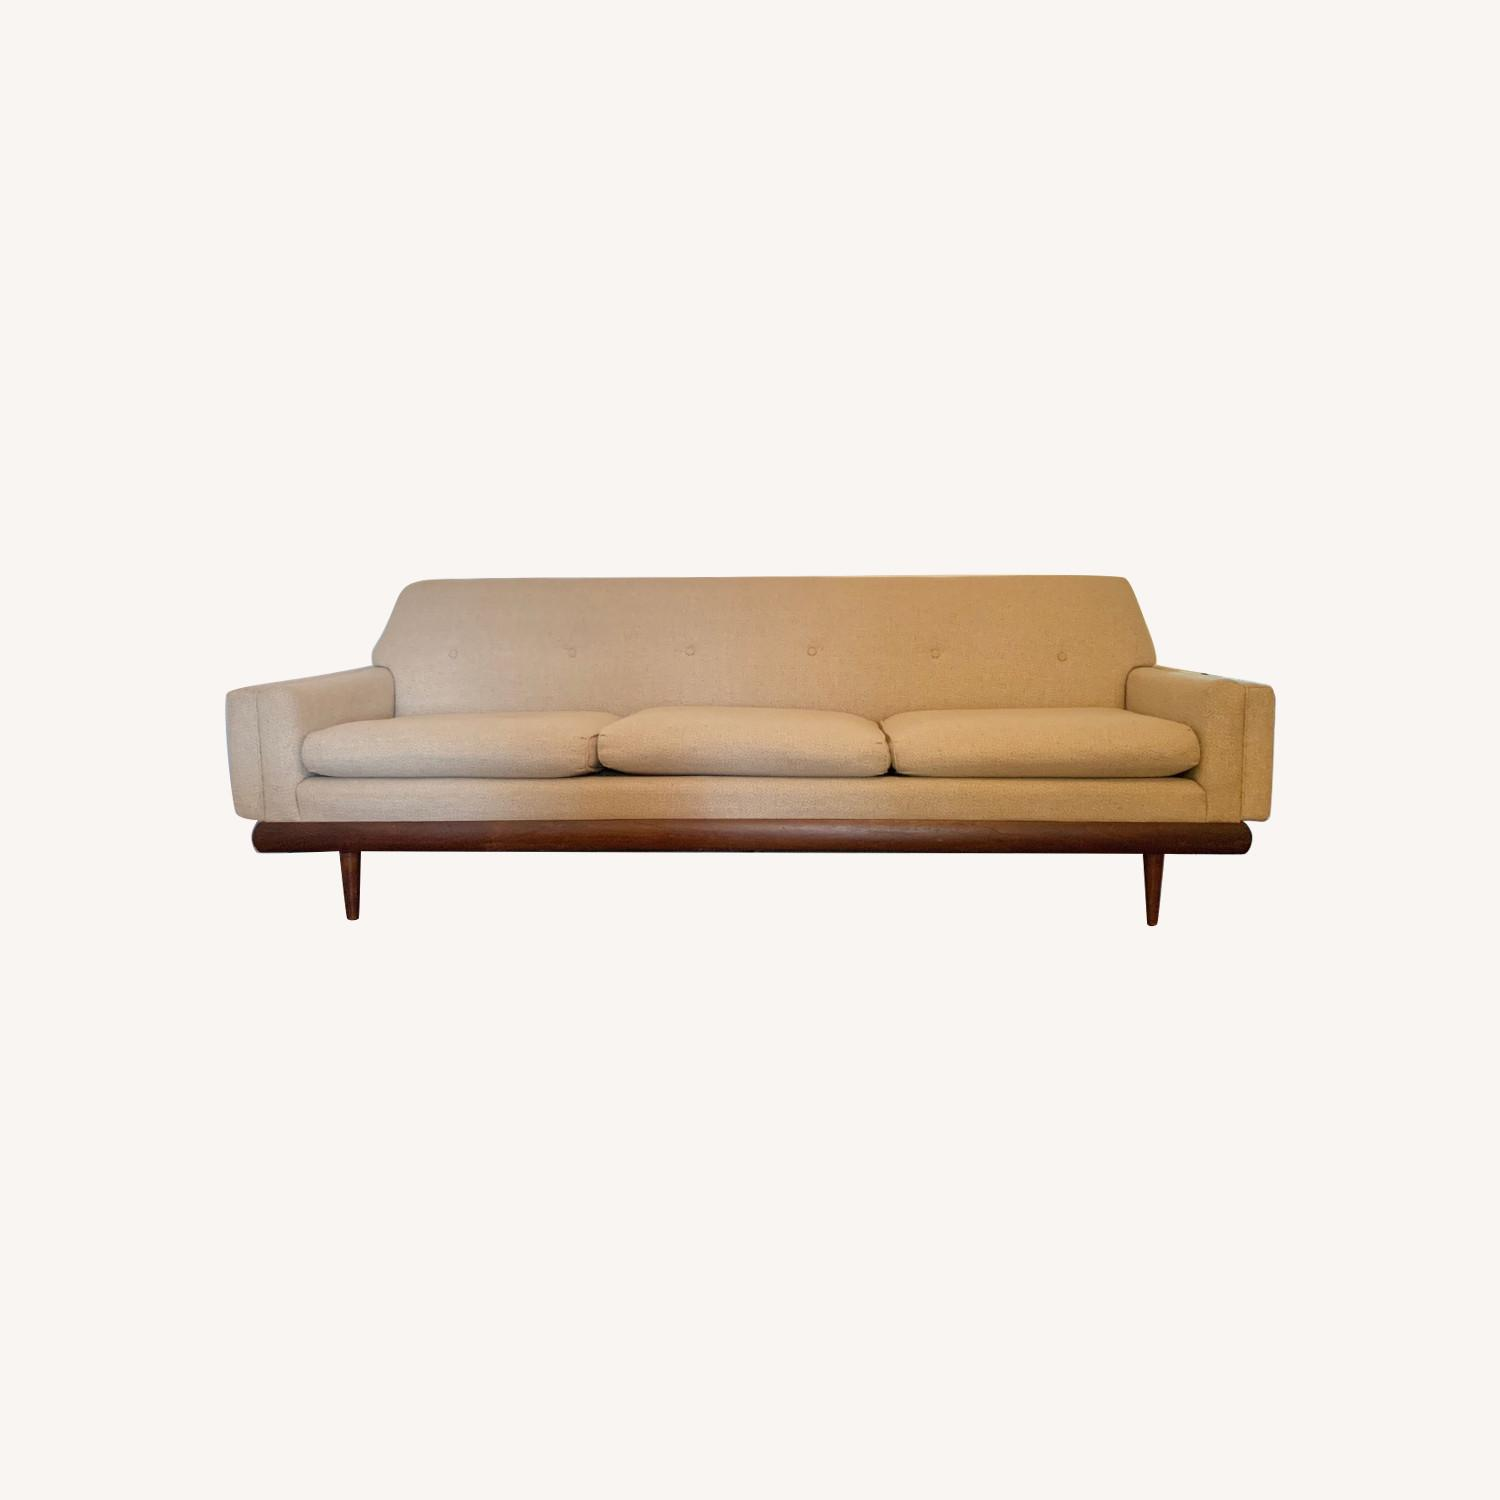 Mid Century Modern Couch - image-0